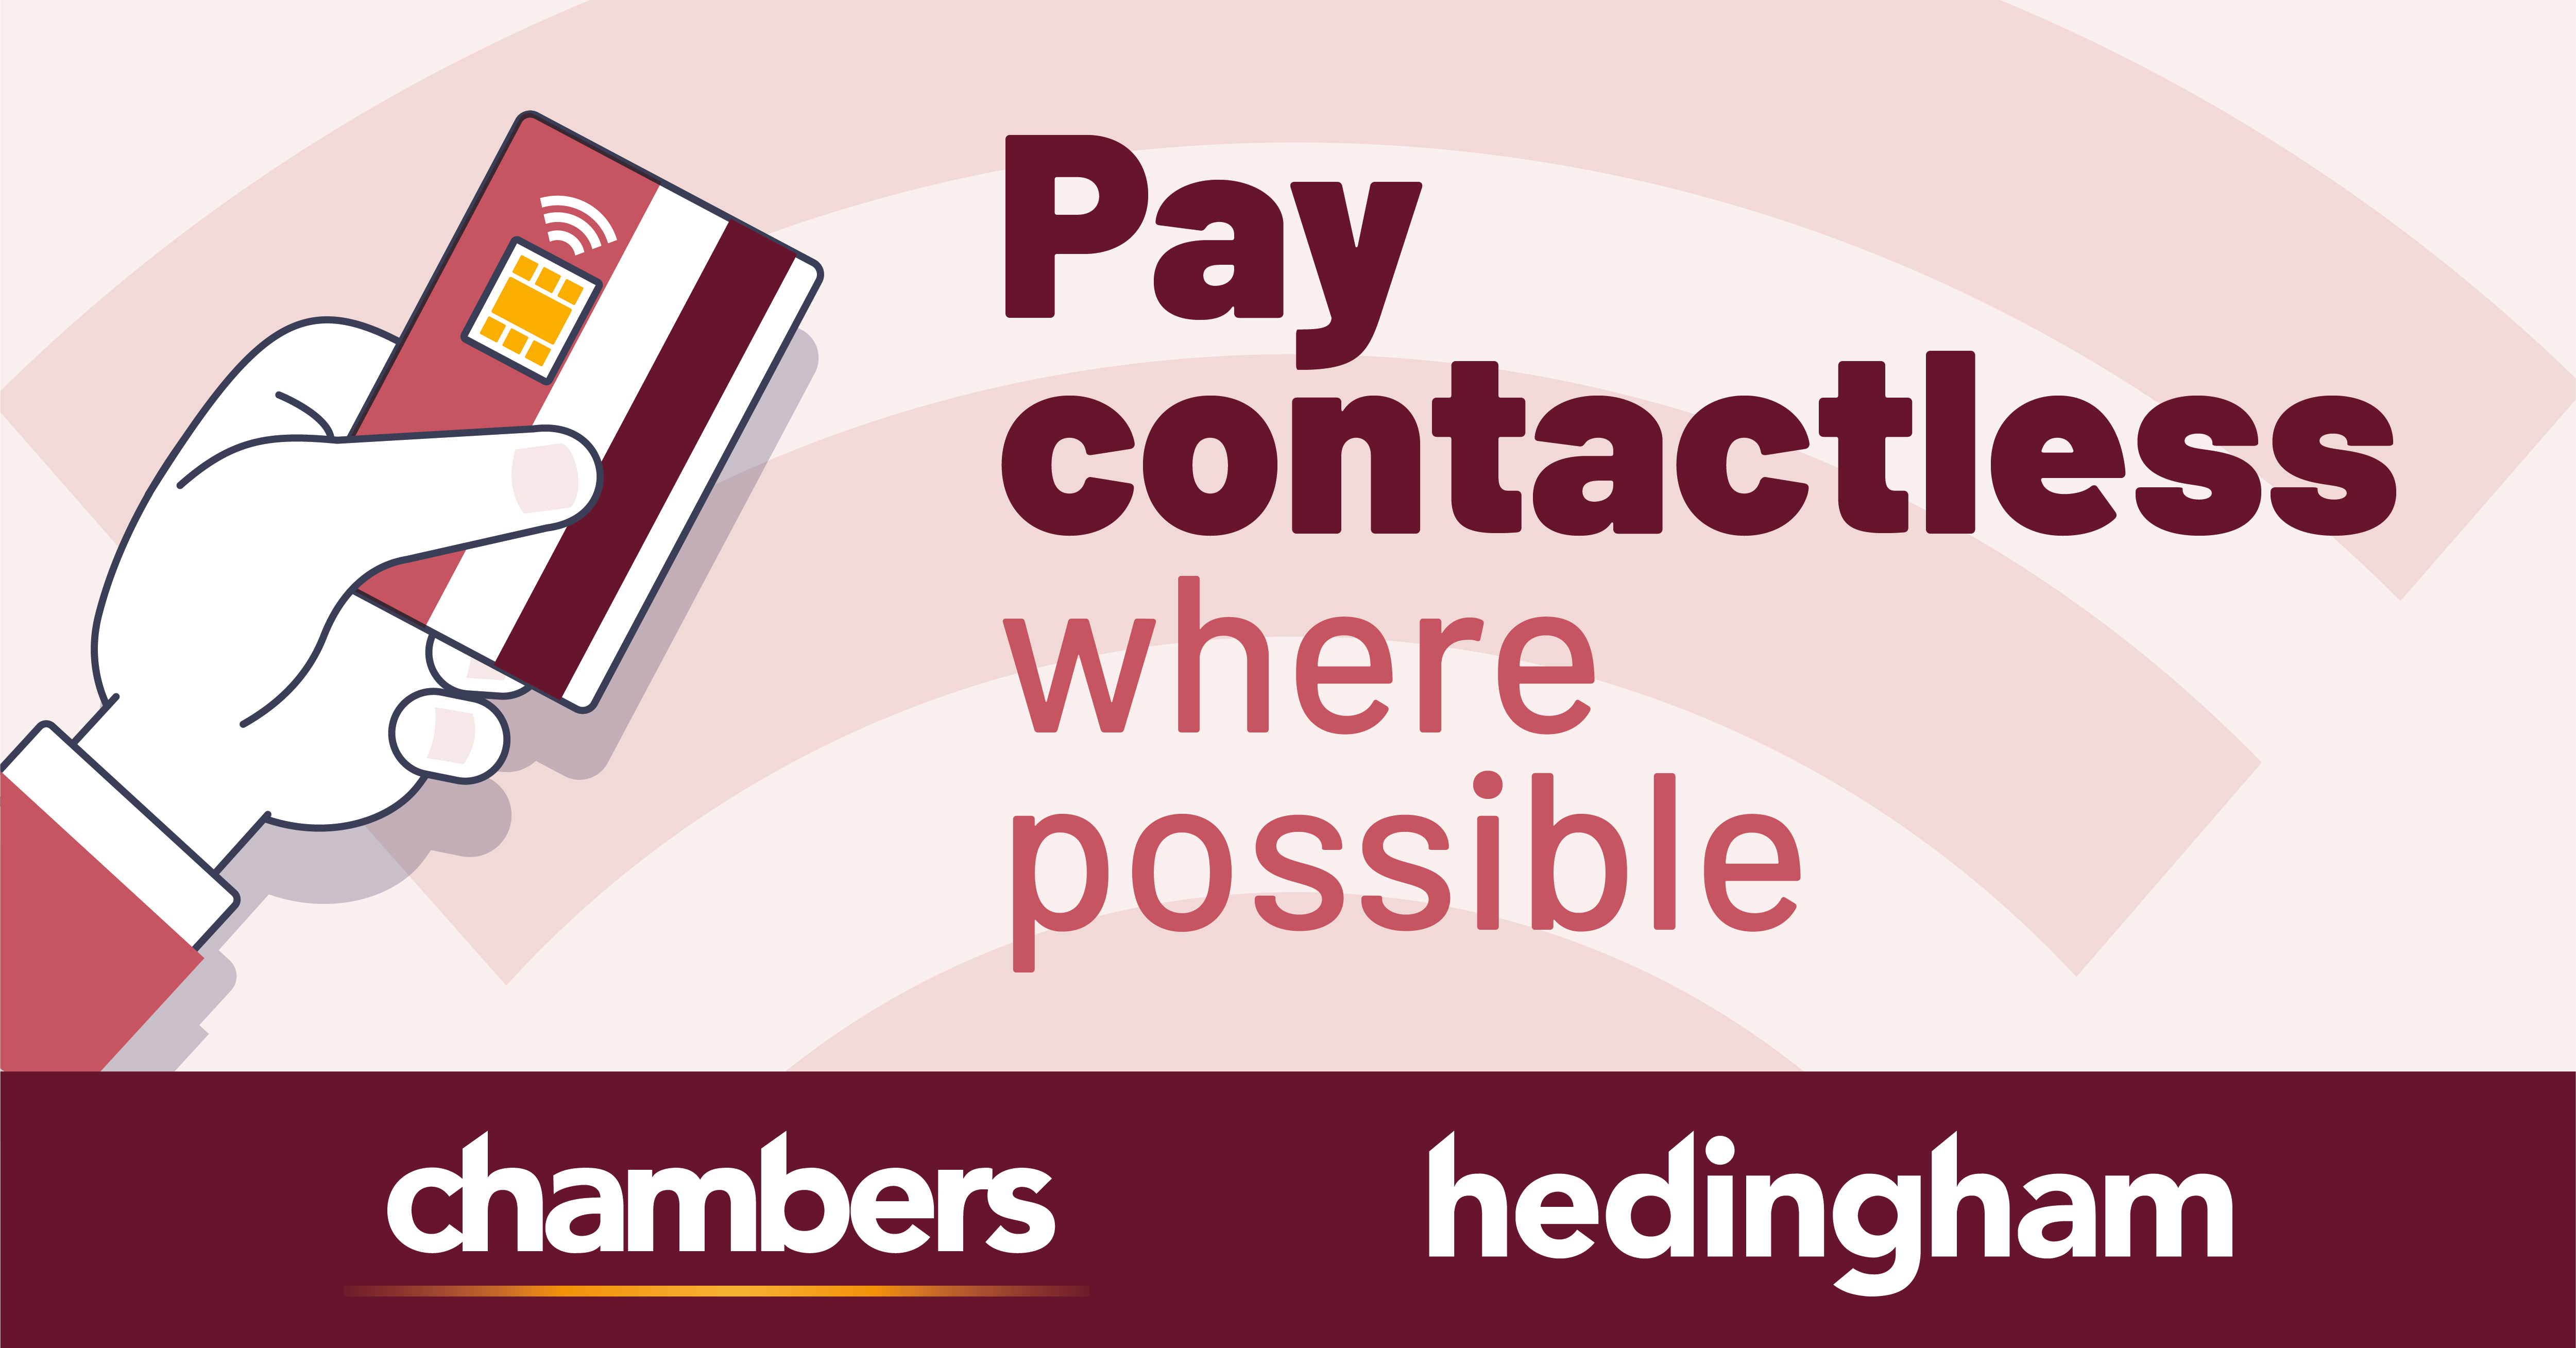 Image reading 'Pay contactless where possible'